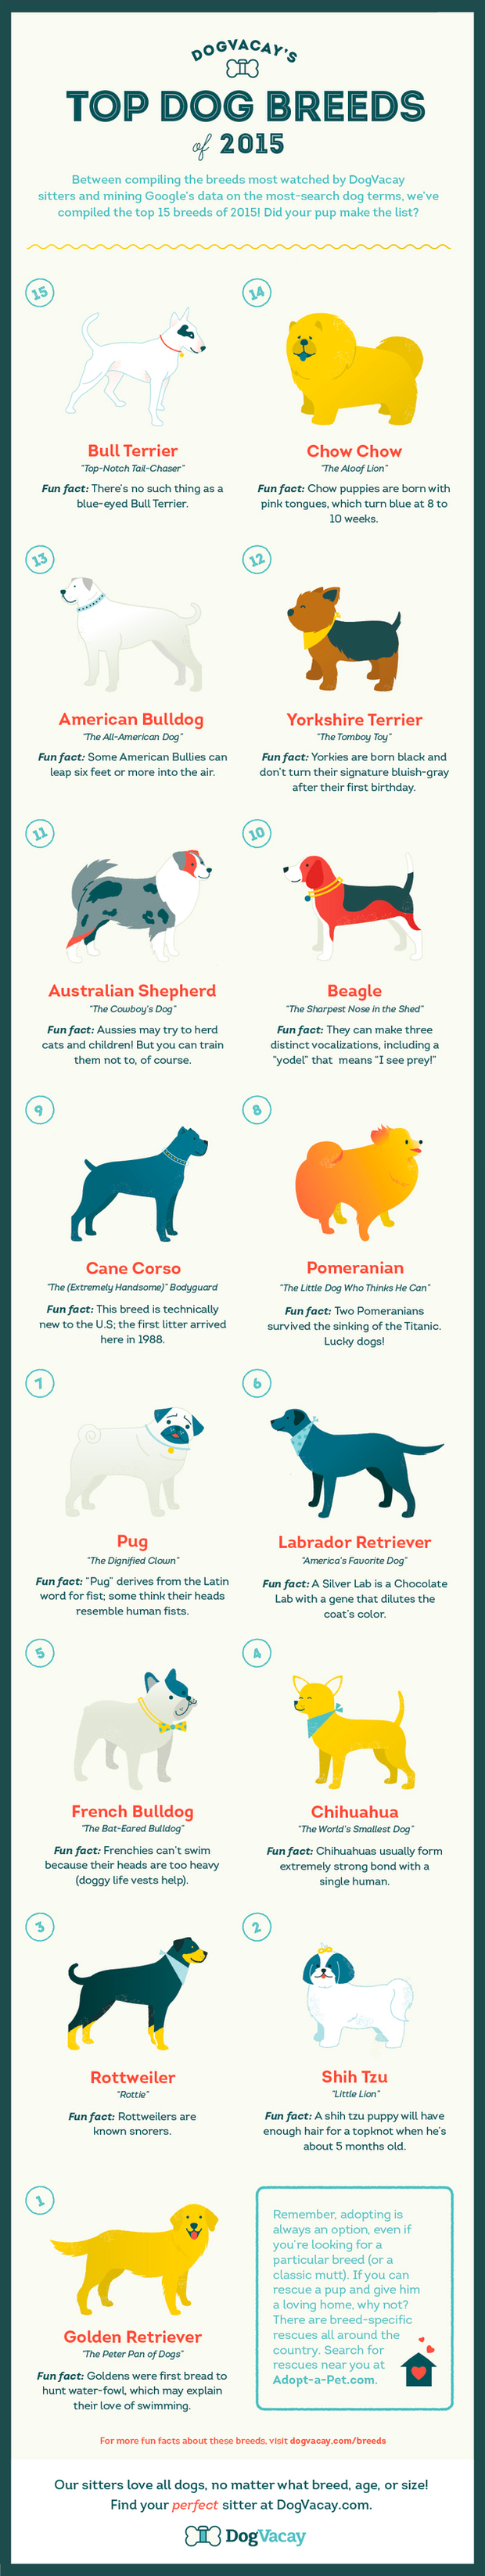 Top dog breeds of 2015